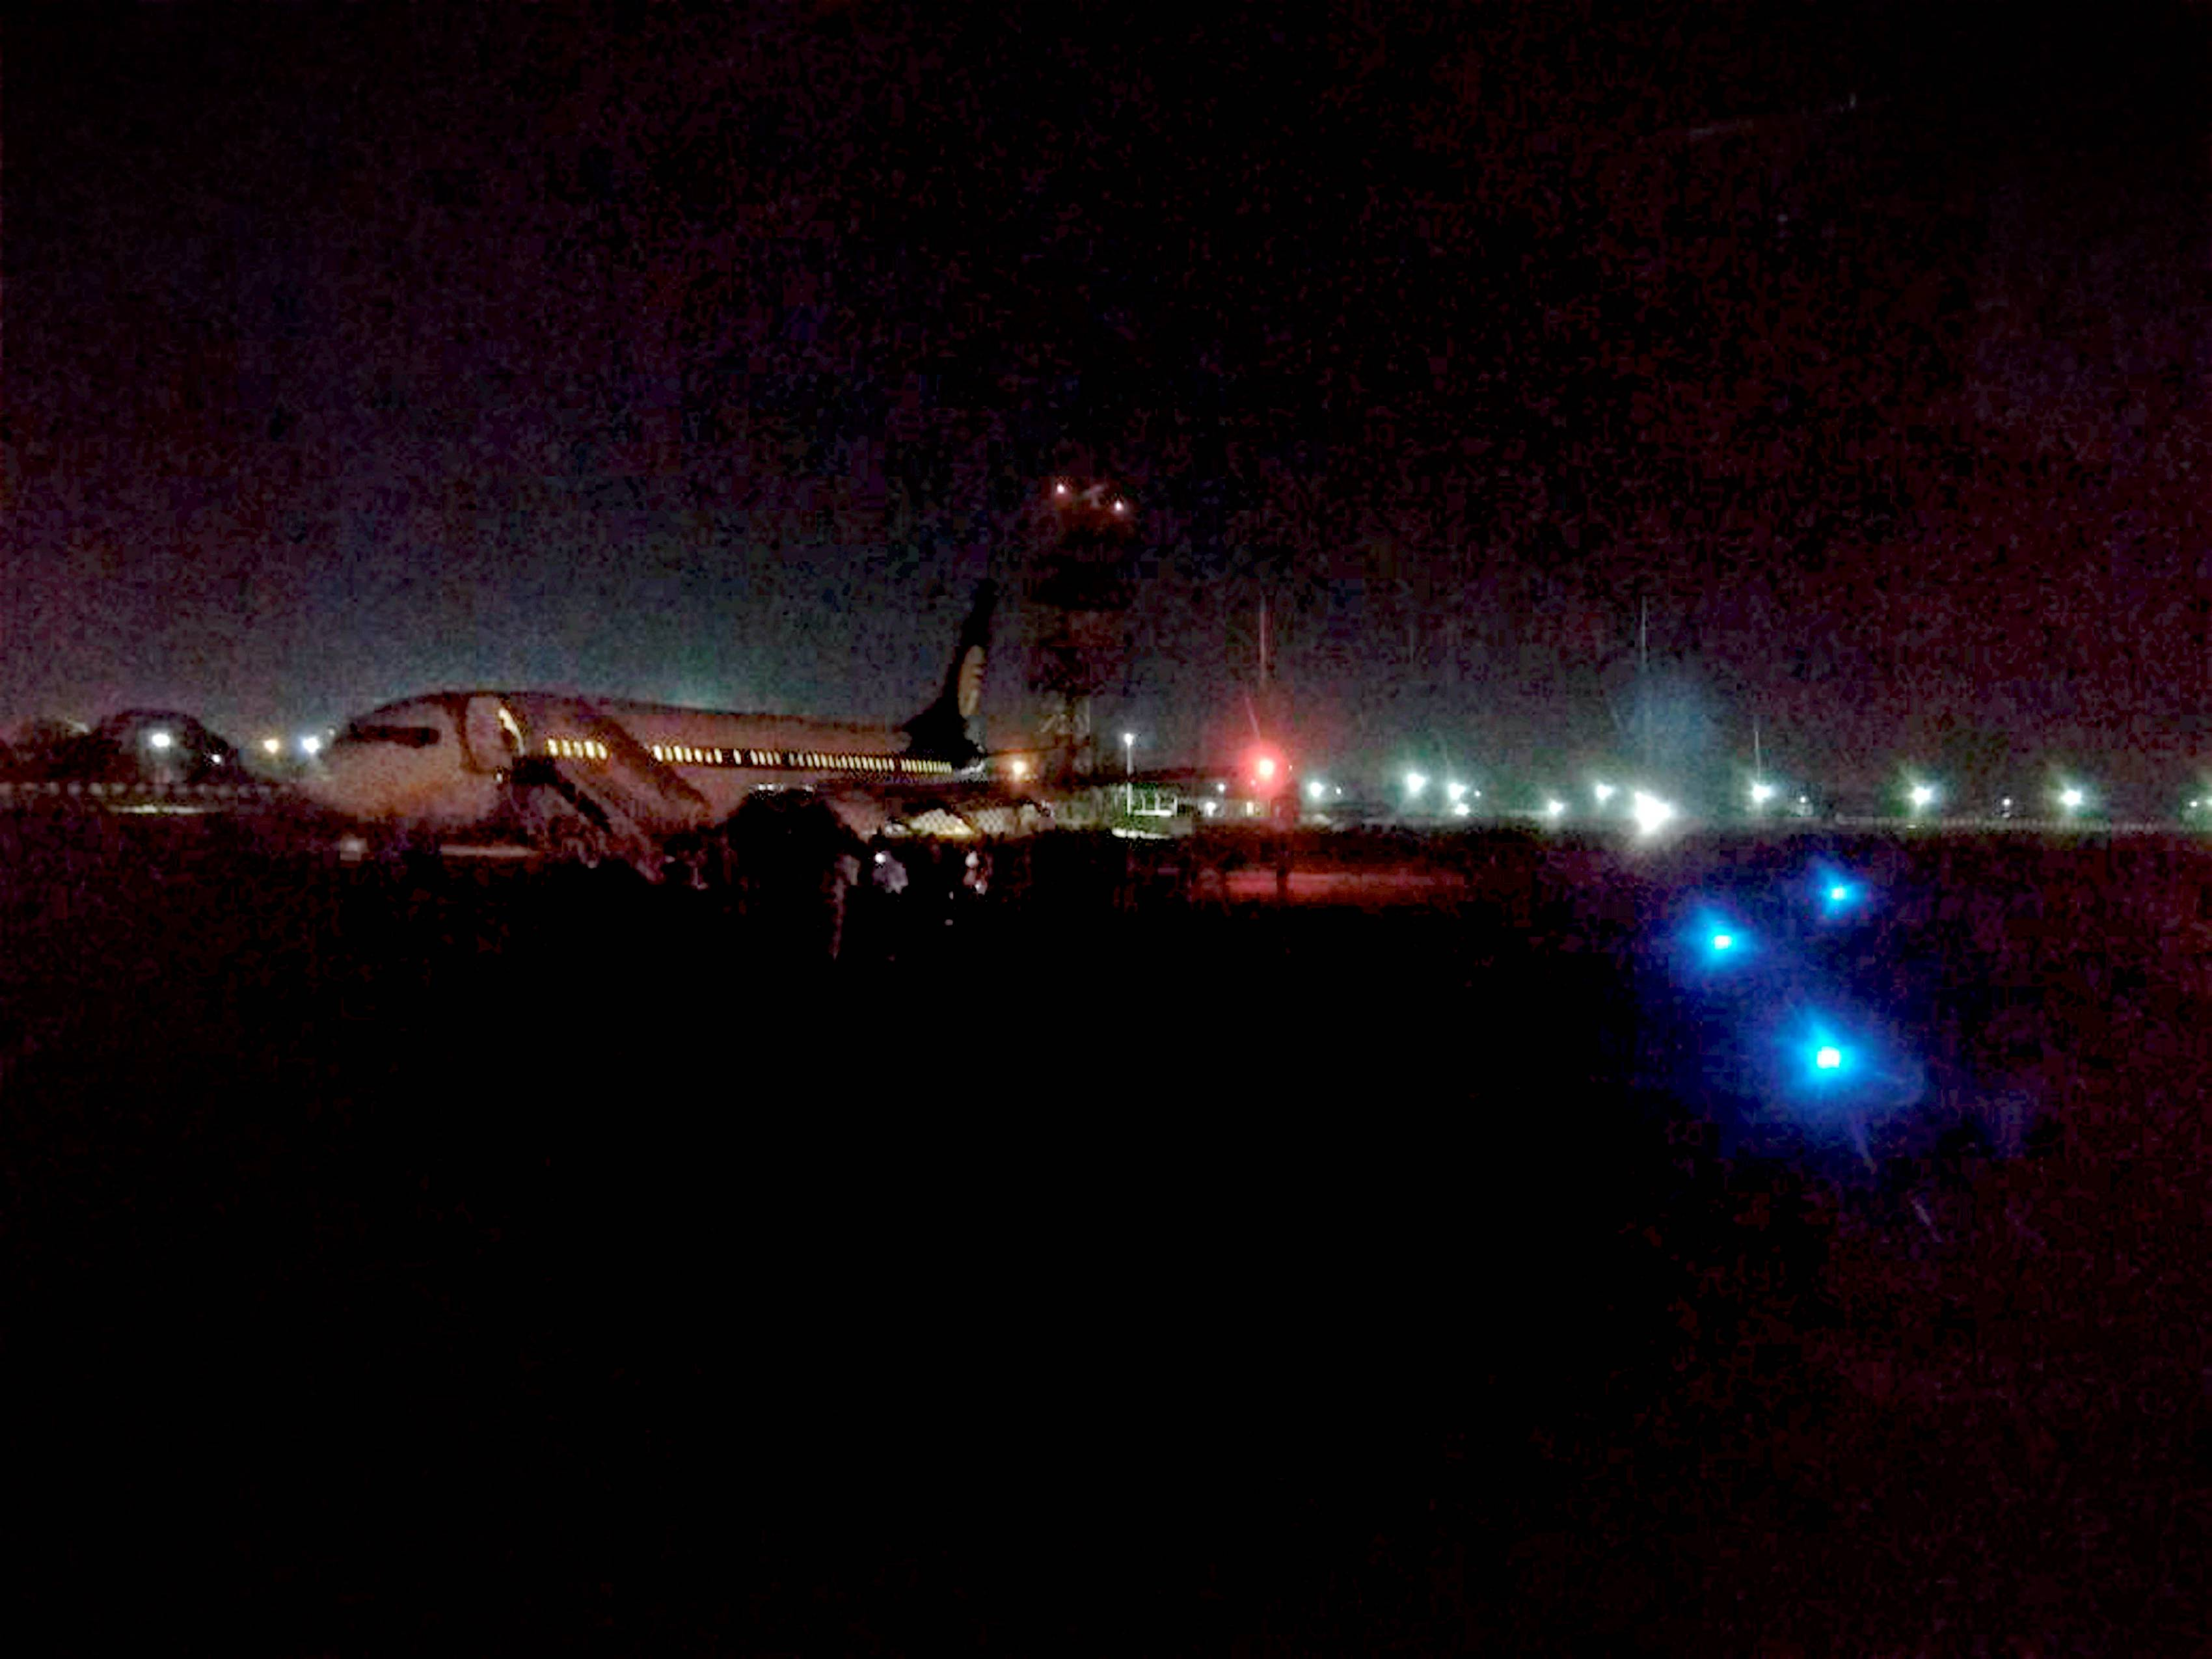 The Mumbai-Delhi Jet Airways flight after making an emergency landing at the Ahmedabad airport due to a security threat - PTI